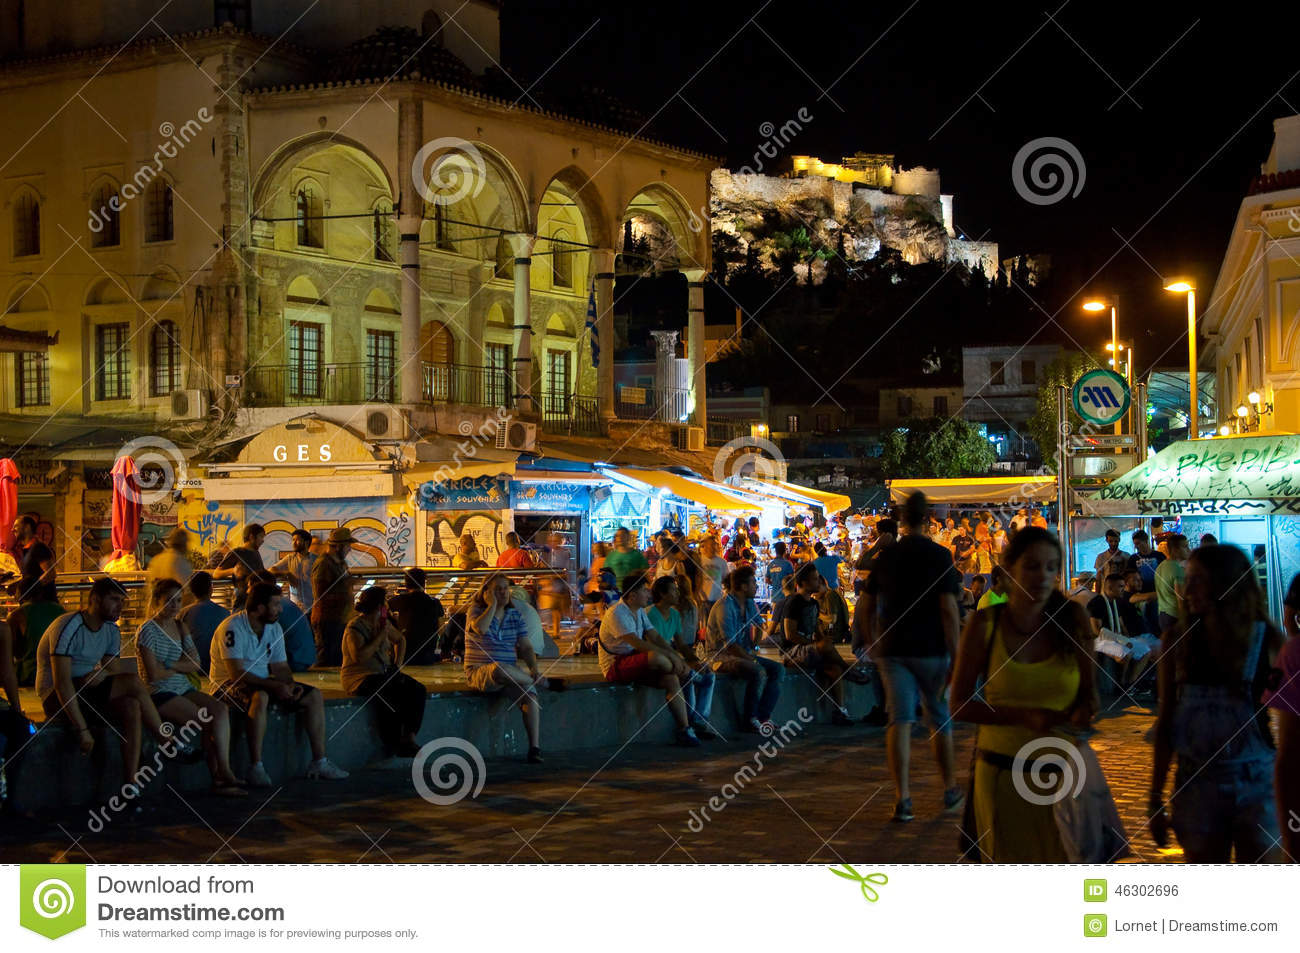 ATHENS-AUGUST 22: Nightlife on Monastiraki Square on August 22, 2014 in Athens, Greece.